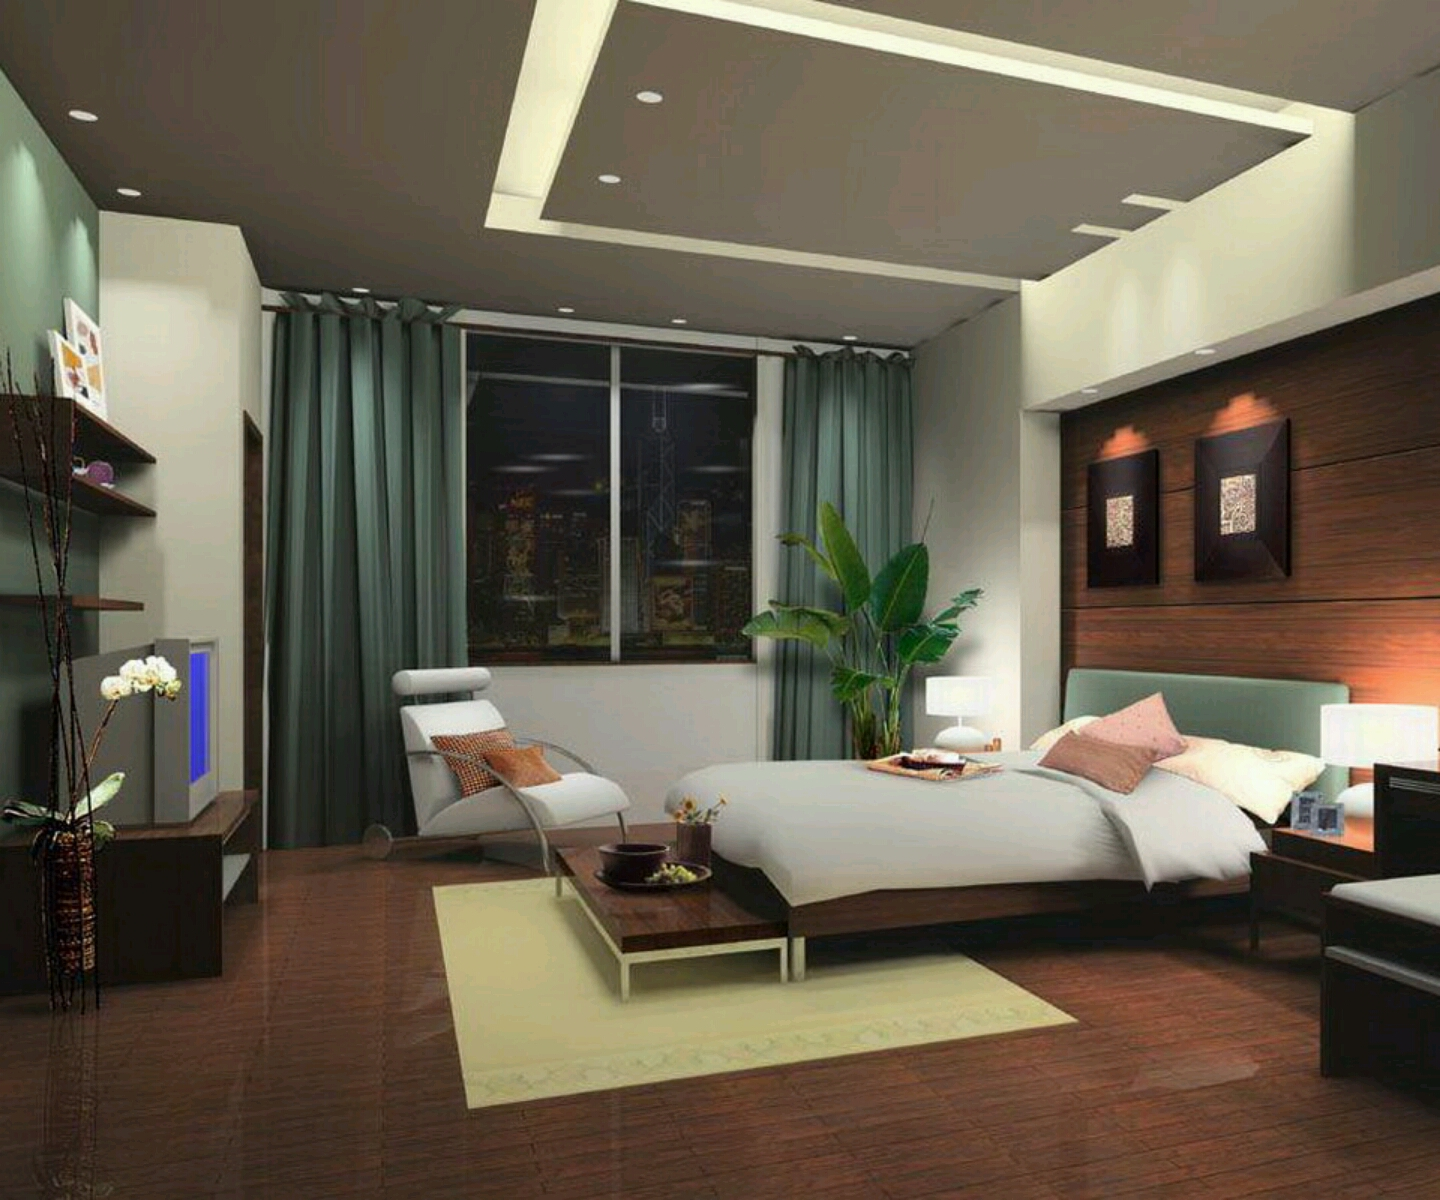 New Home Designs Latest Modern Interior Decoration: New Home Designs Latest.: Modern Bedrooms Designs Best Ideas